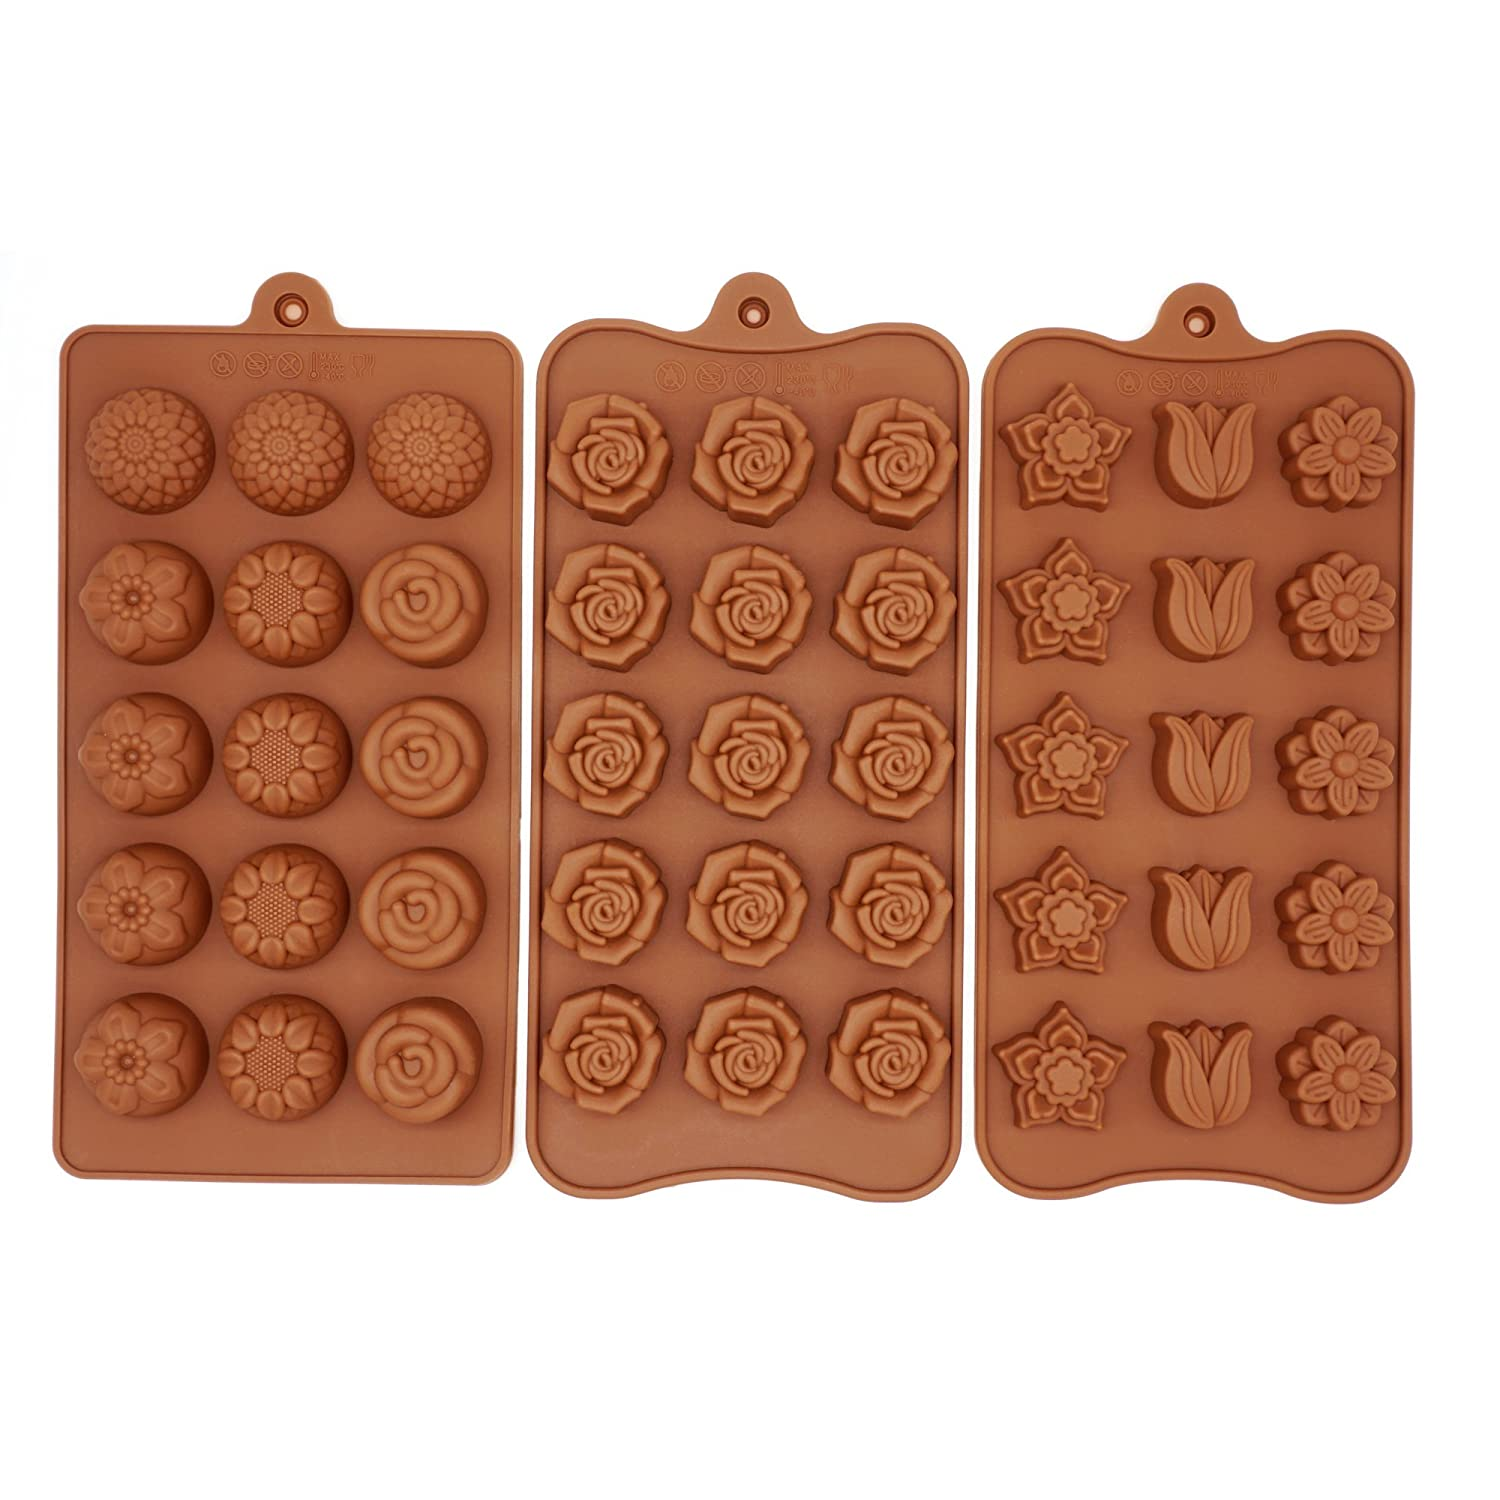 Poproo Flower 3-Piece Candy Set, Silicone Chocolate Ice Cube Molds, Tulip Rose Sunflower Lotus Shapes Q3-FRA8-V0GK